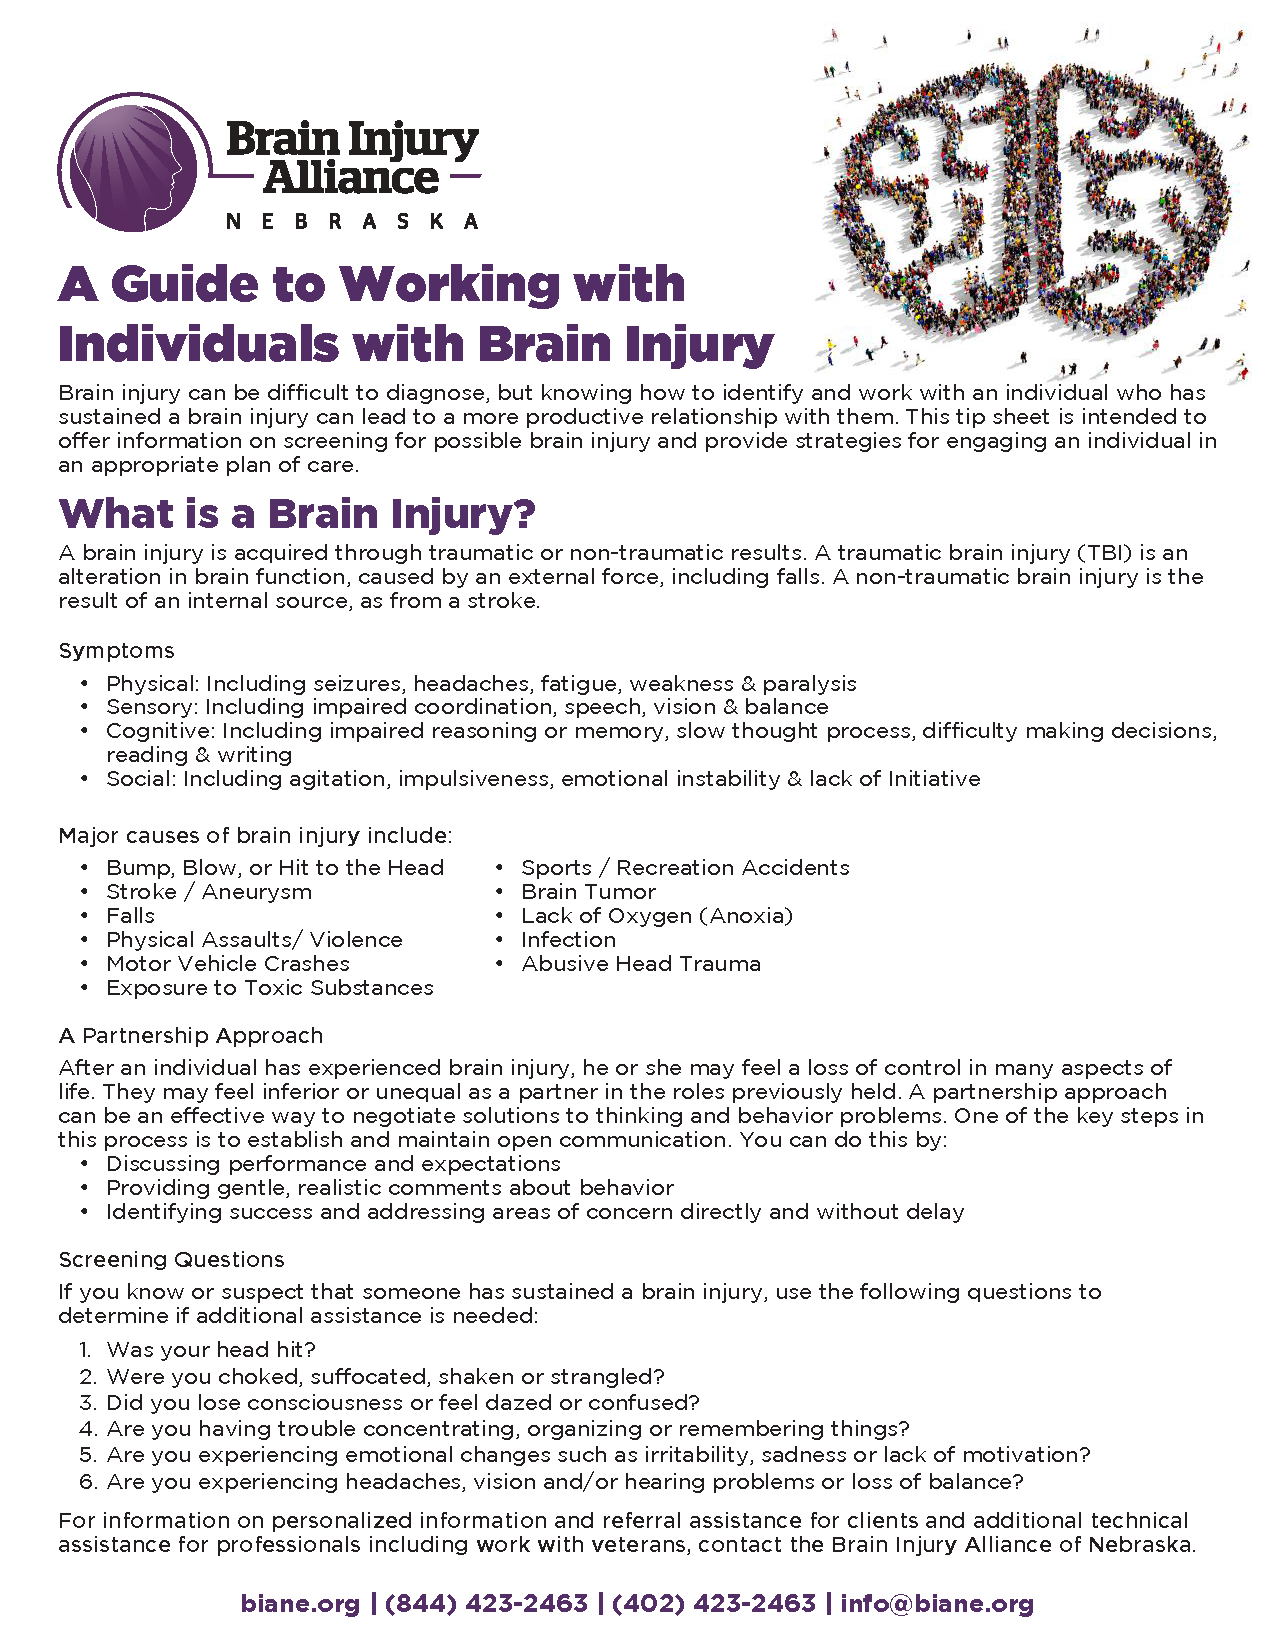 A Guide to Working with Individuals with Brain Injury